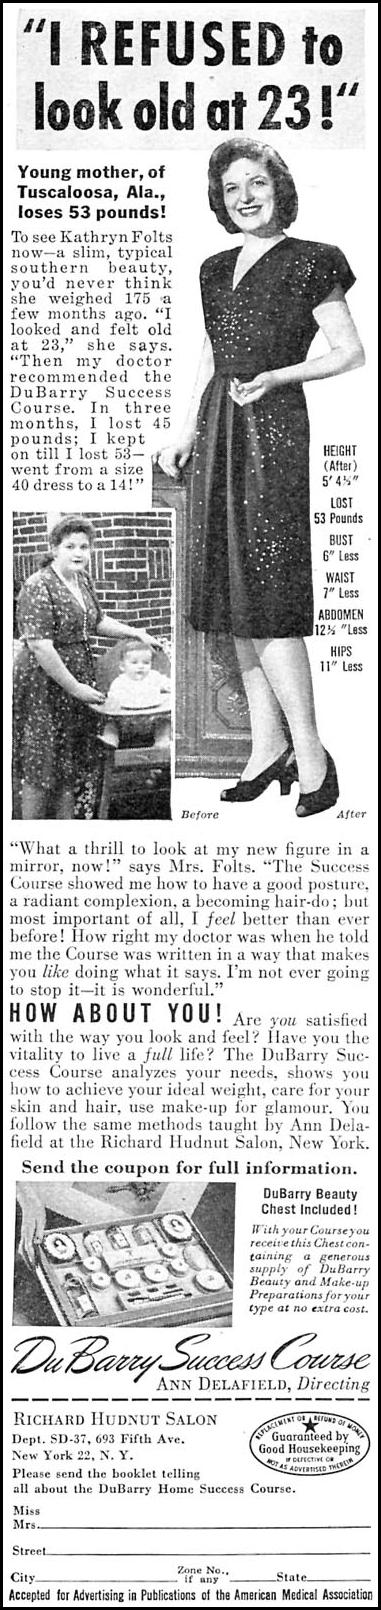 DUBARRY SUCCESS COURSE WOMAN'S DAY 04/01/1946 p. 58